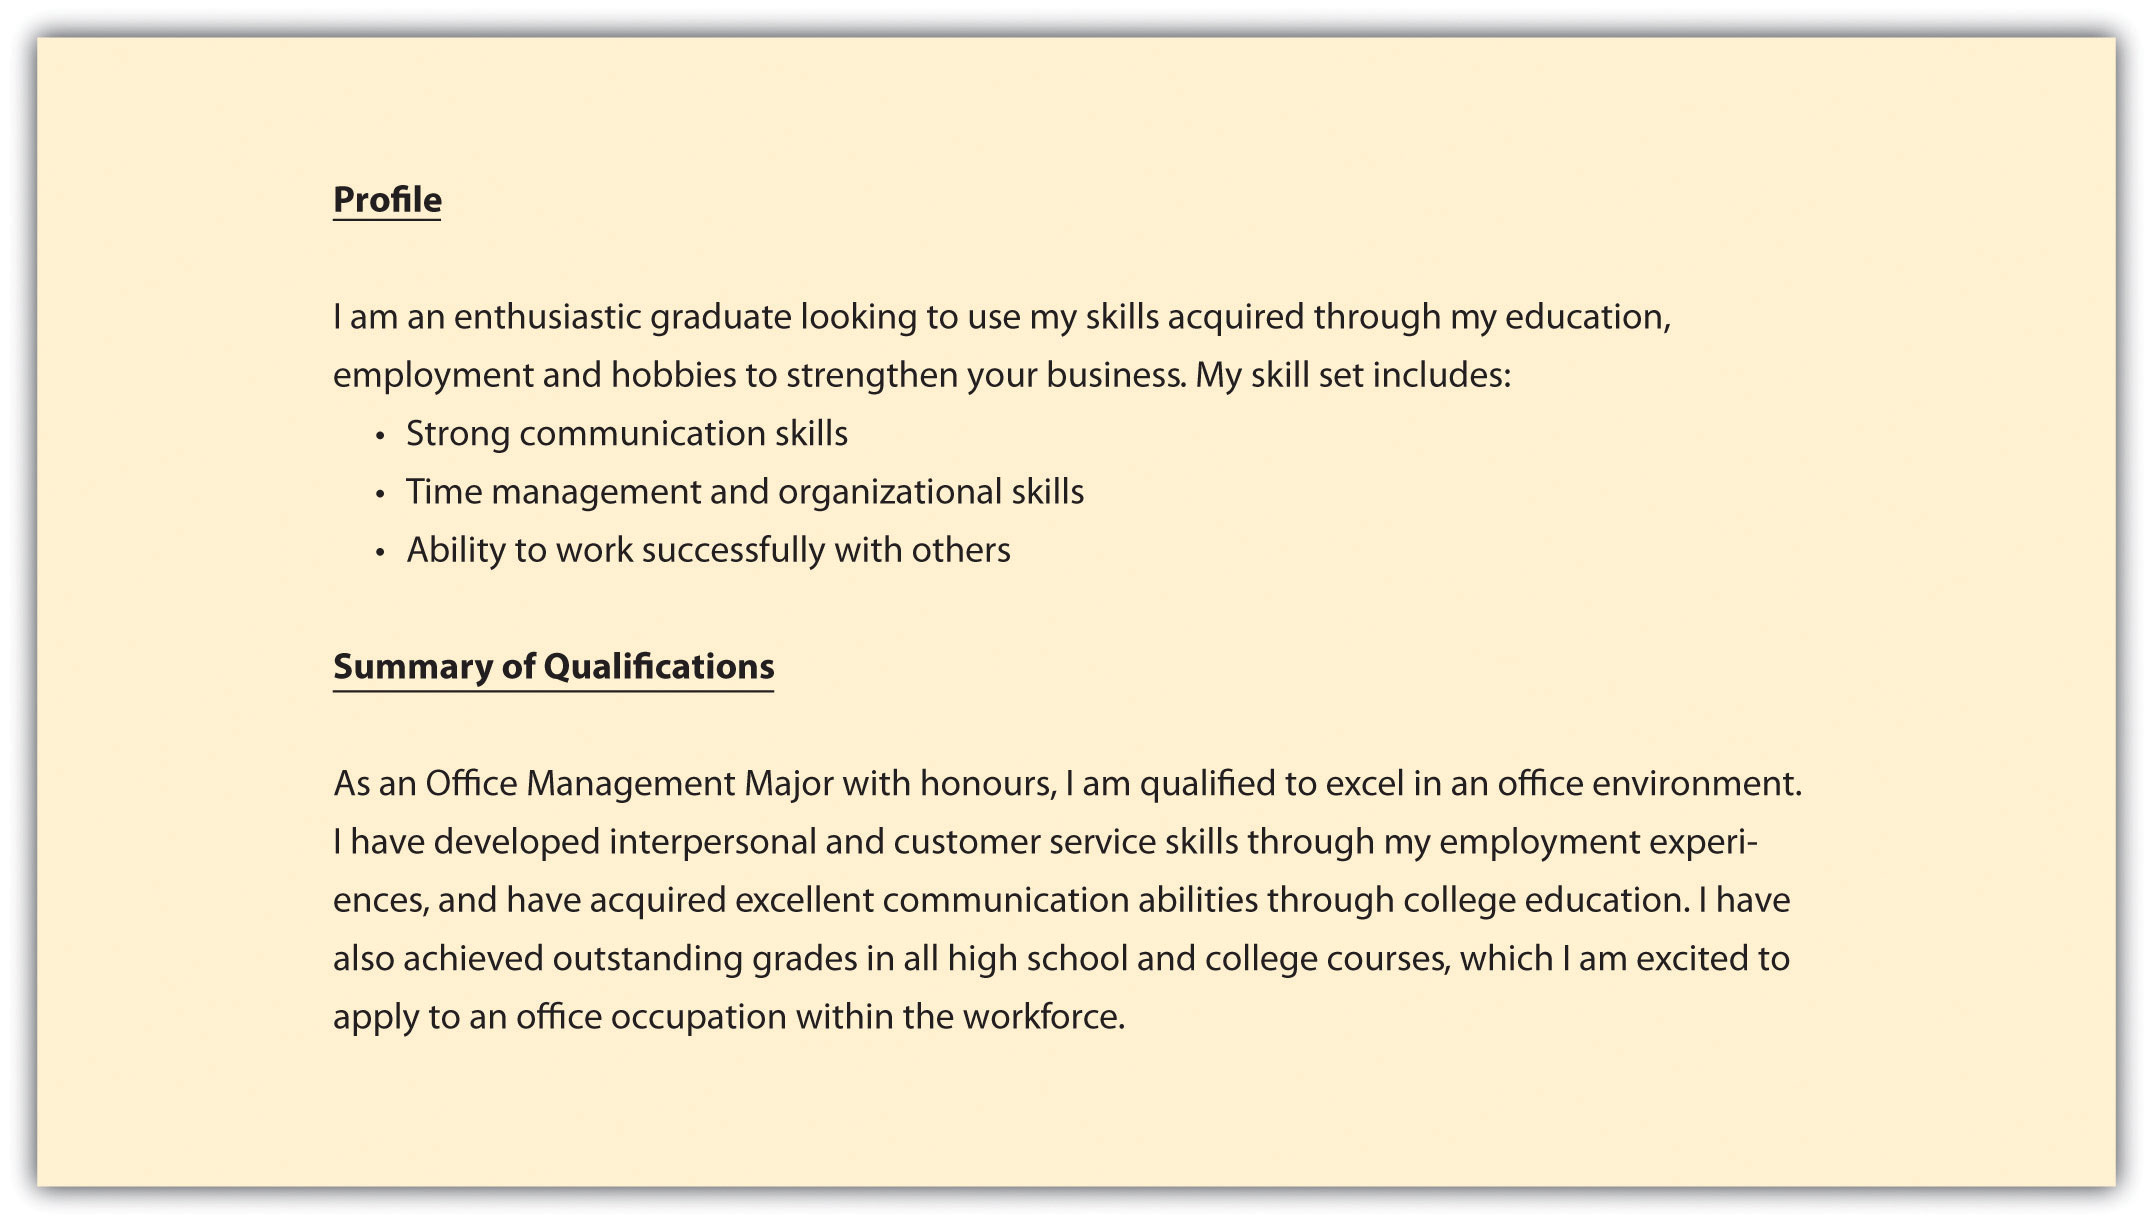 profile for a resumes